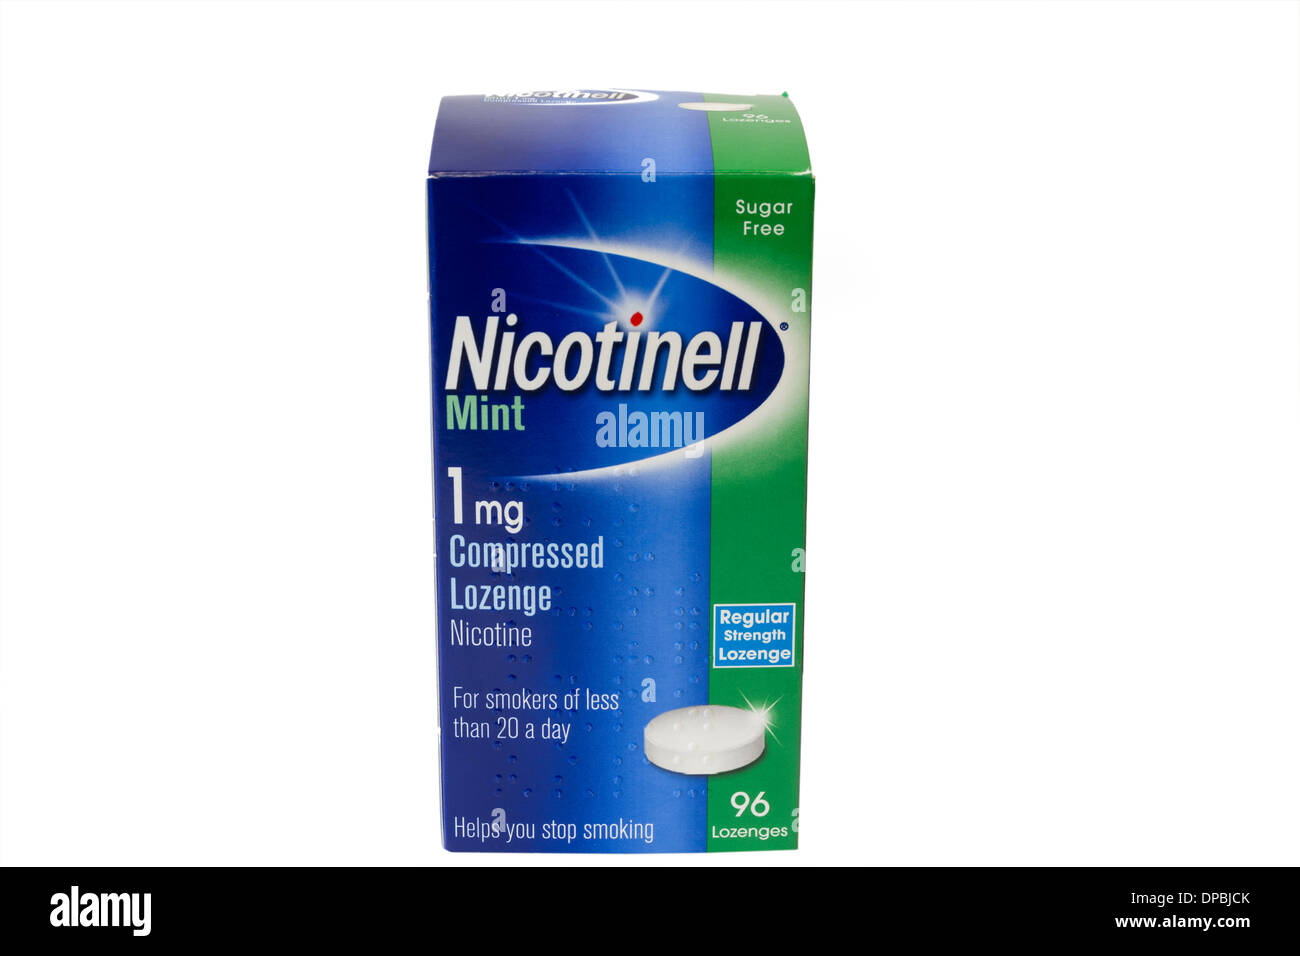 A box of Nicotinell lozenges used to help people to stop smoking - Stock Image